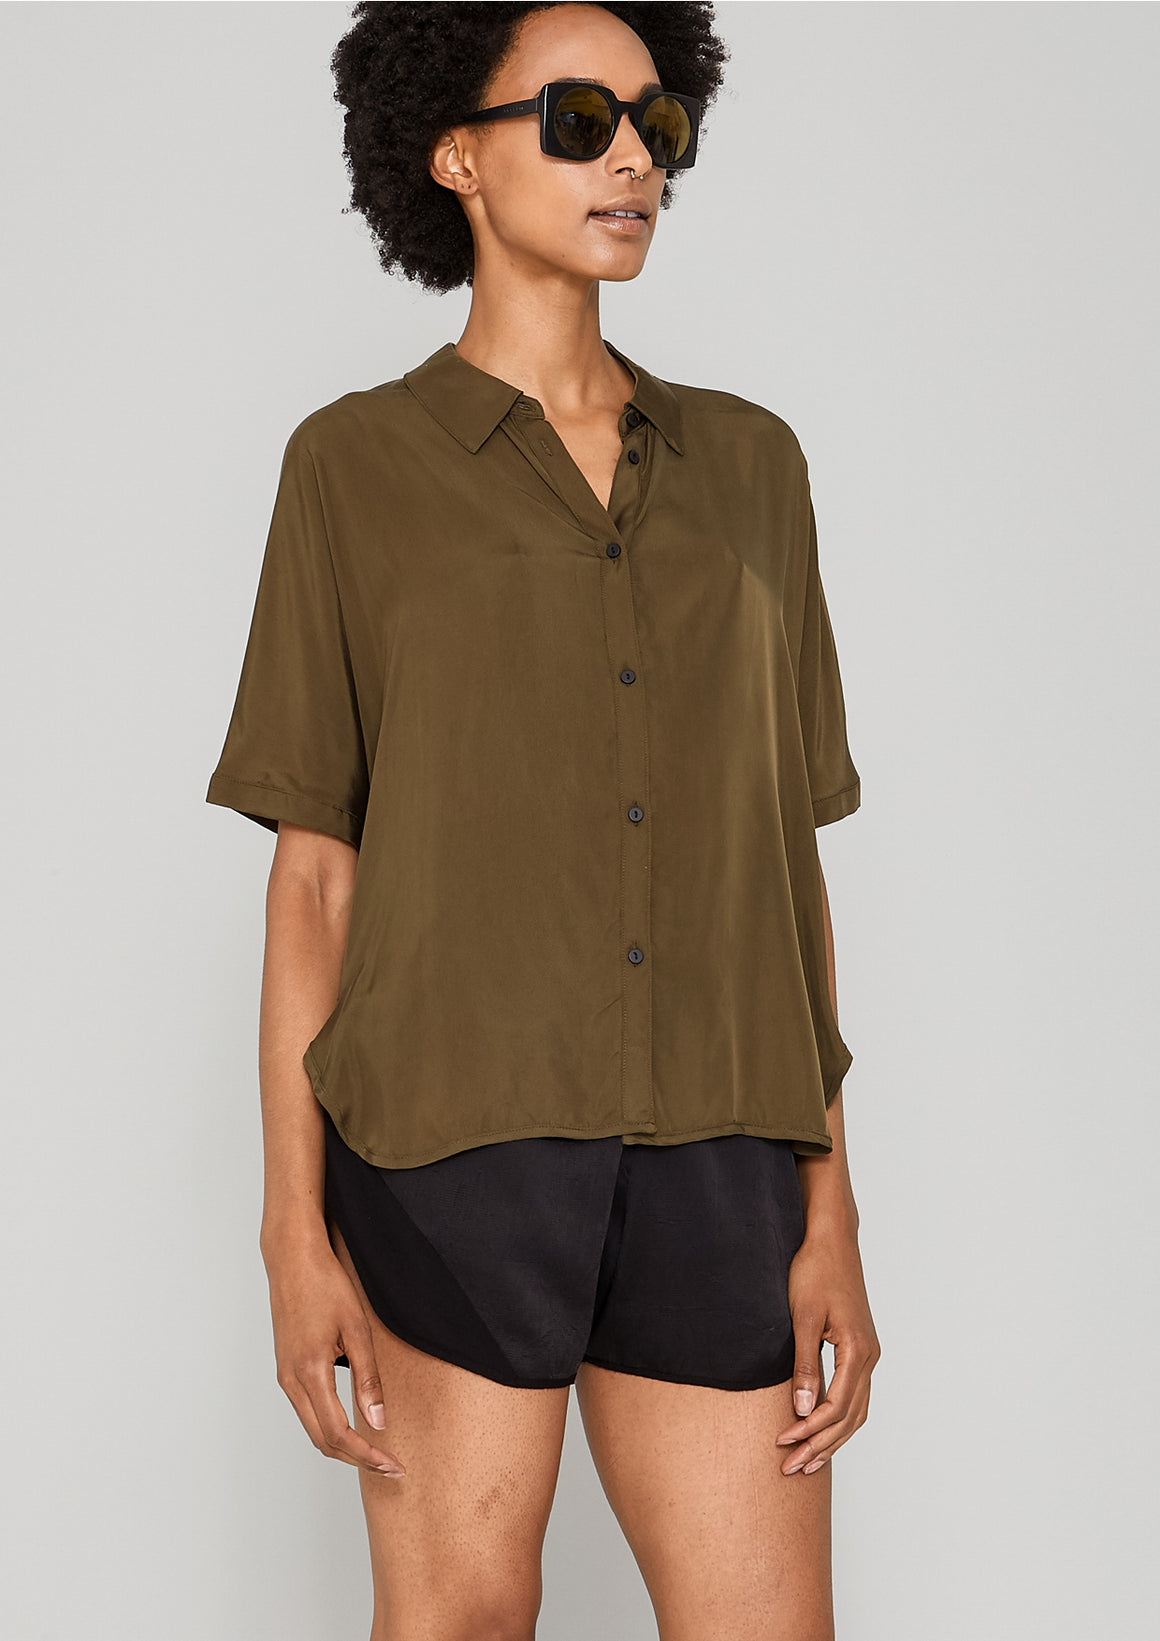 BLOUSE SHORT SLEEVES - SILKY CUPRO khaki - BERENIK